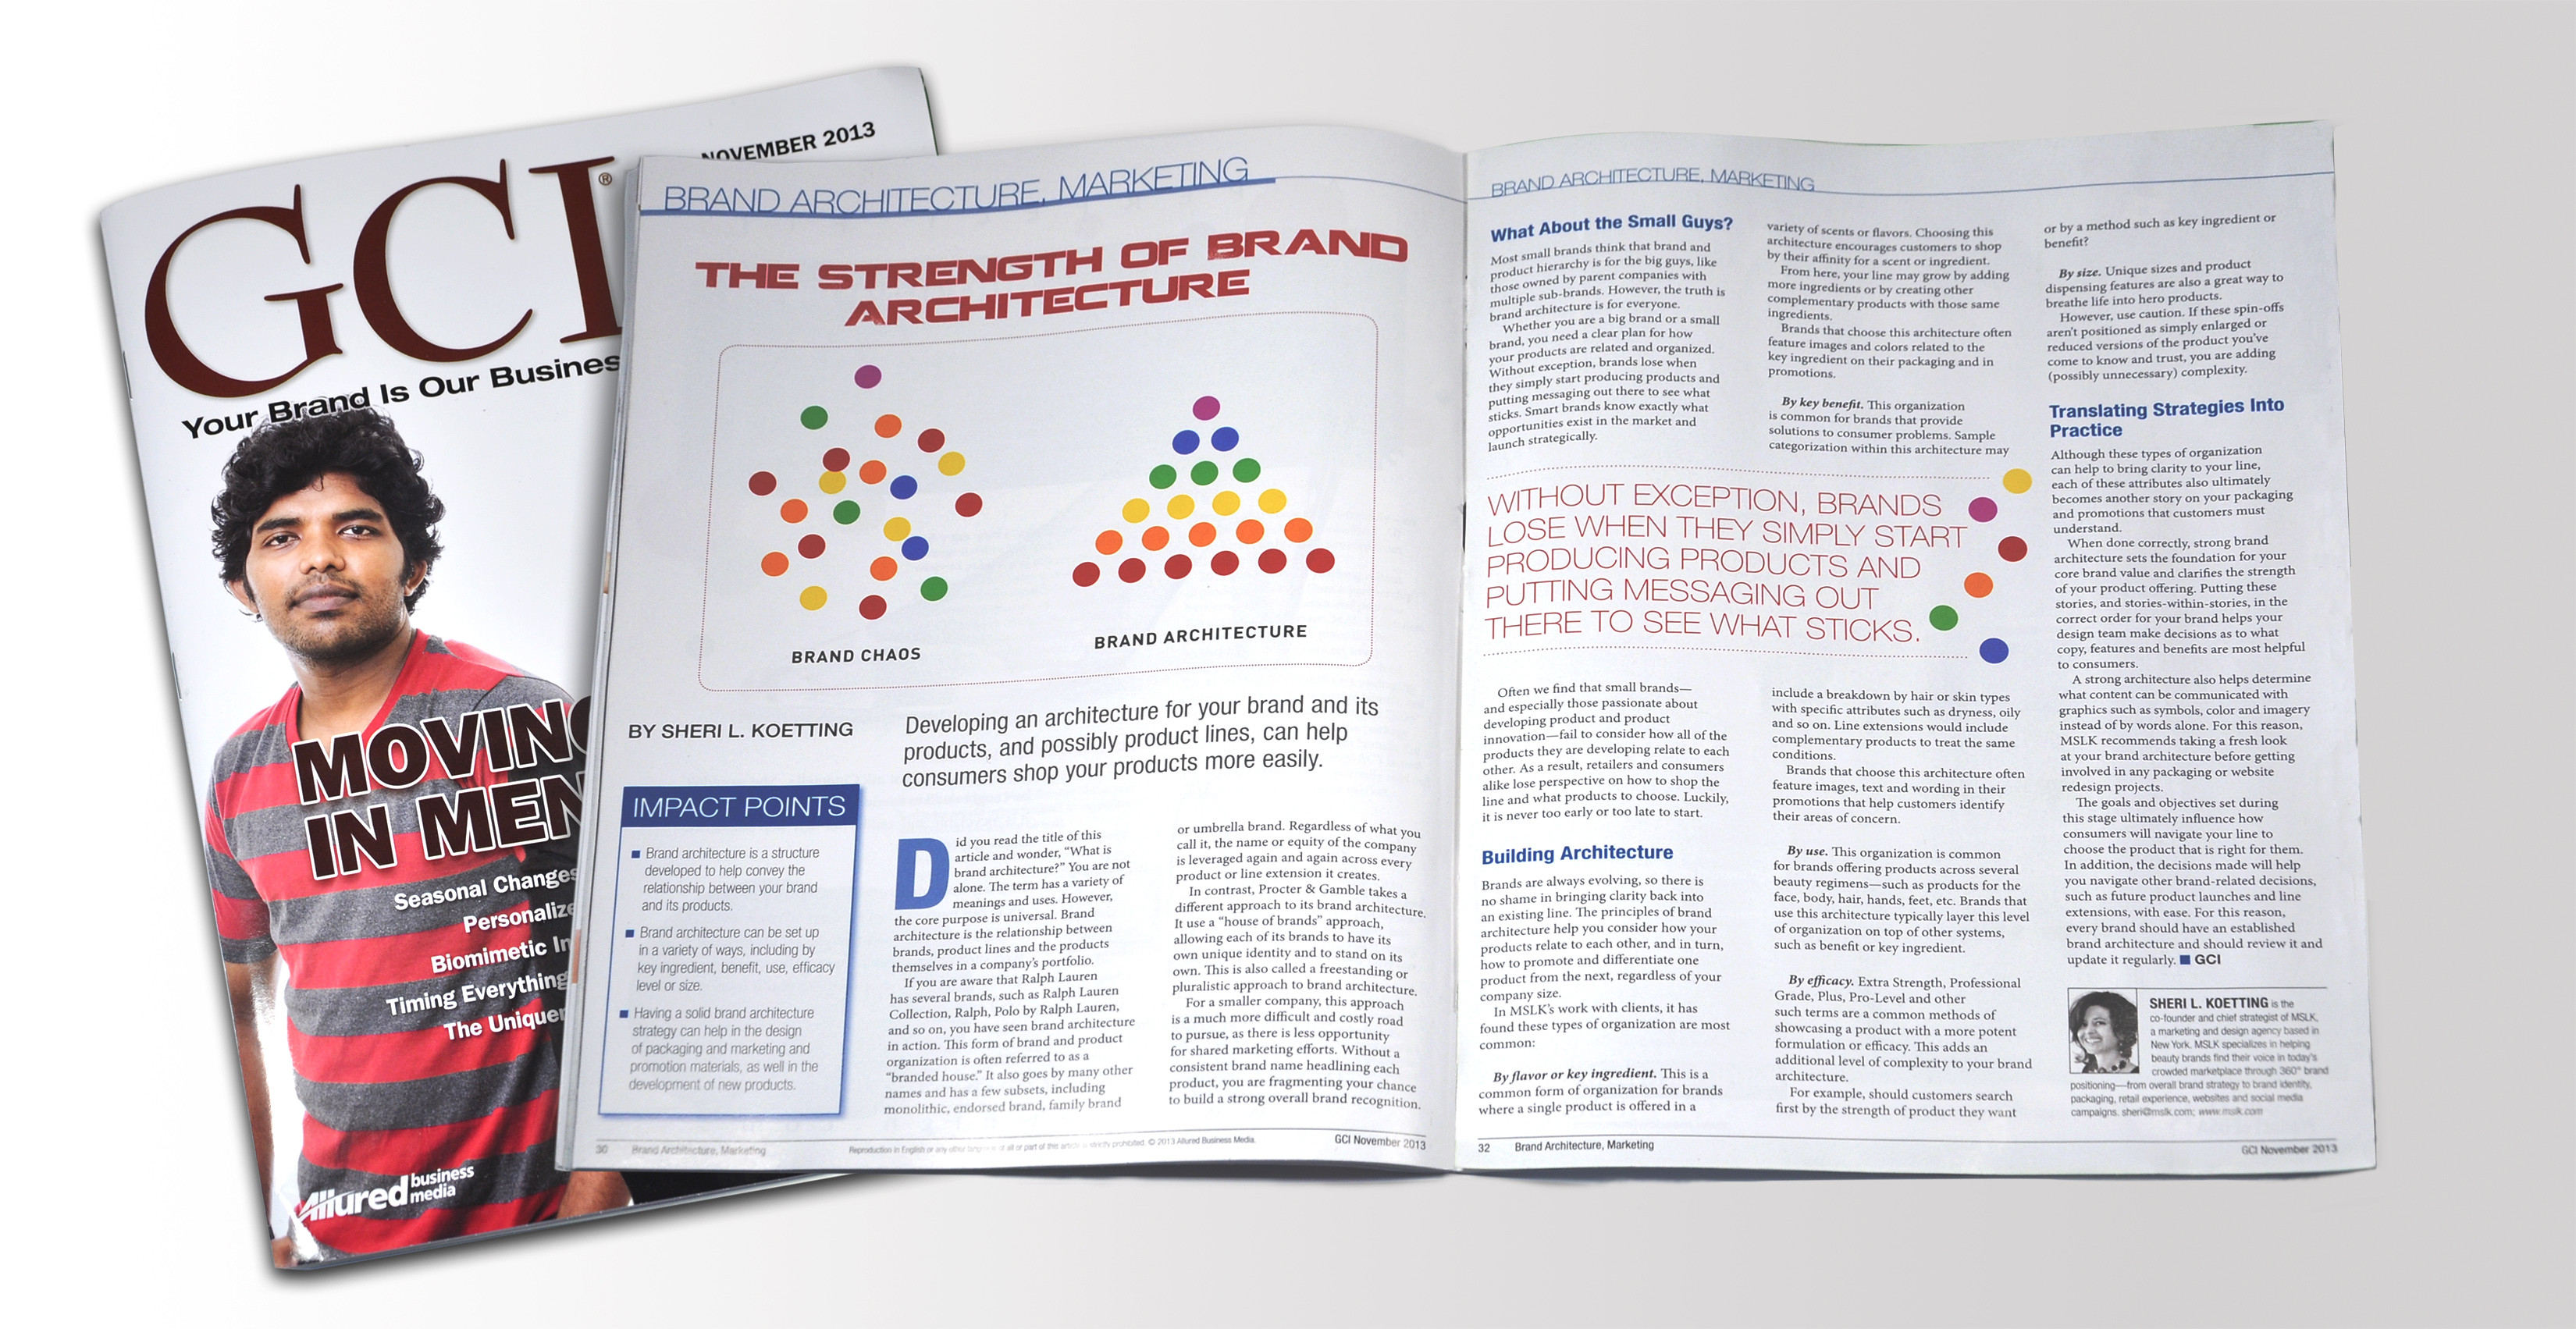 GCI Article: The Strength of Brand Architecture